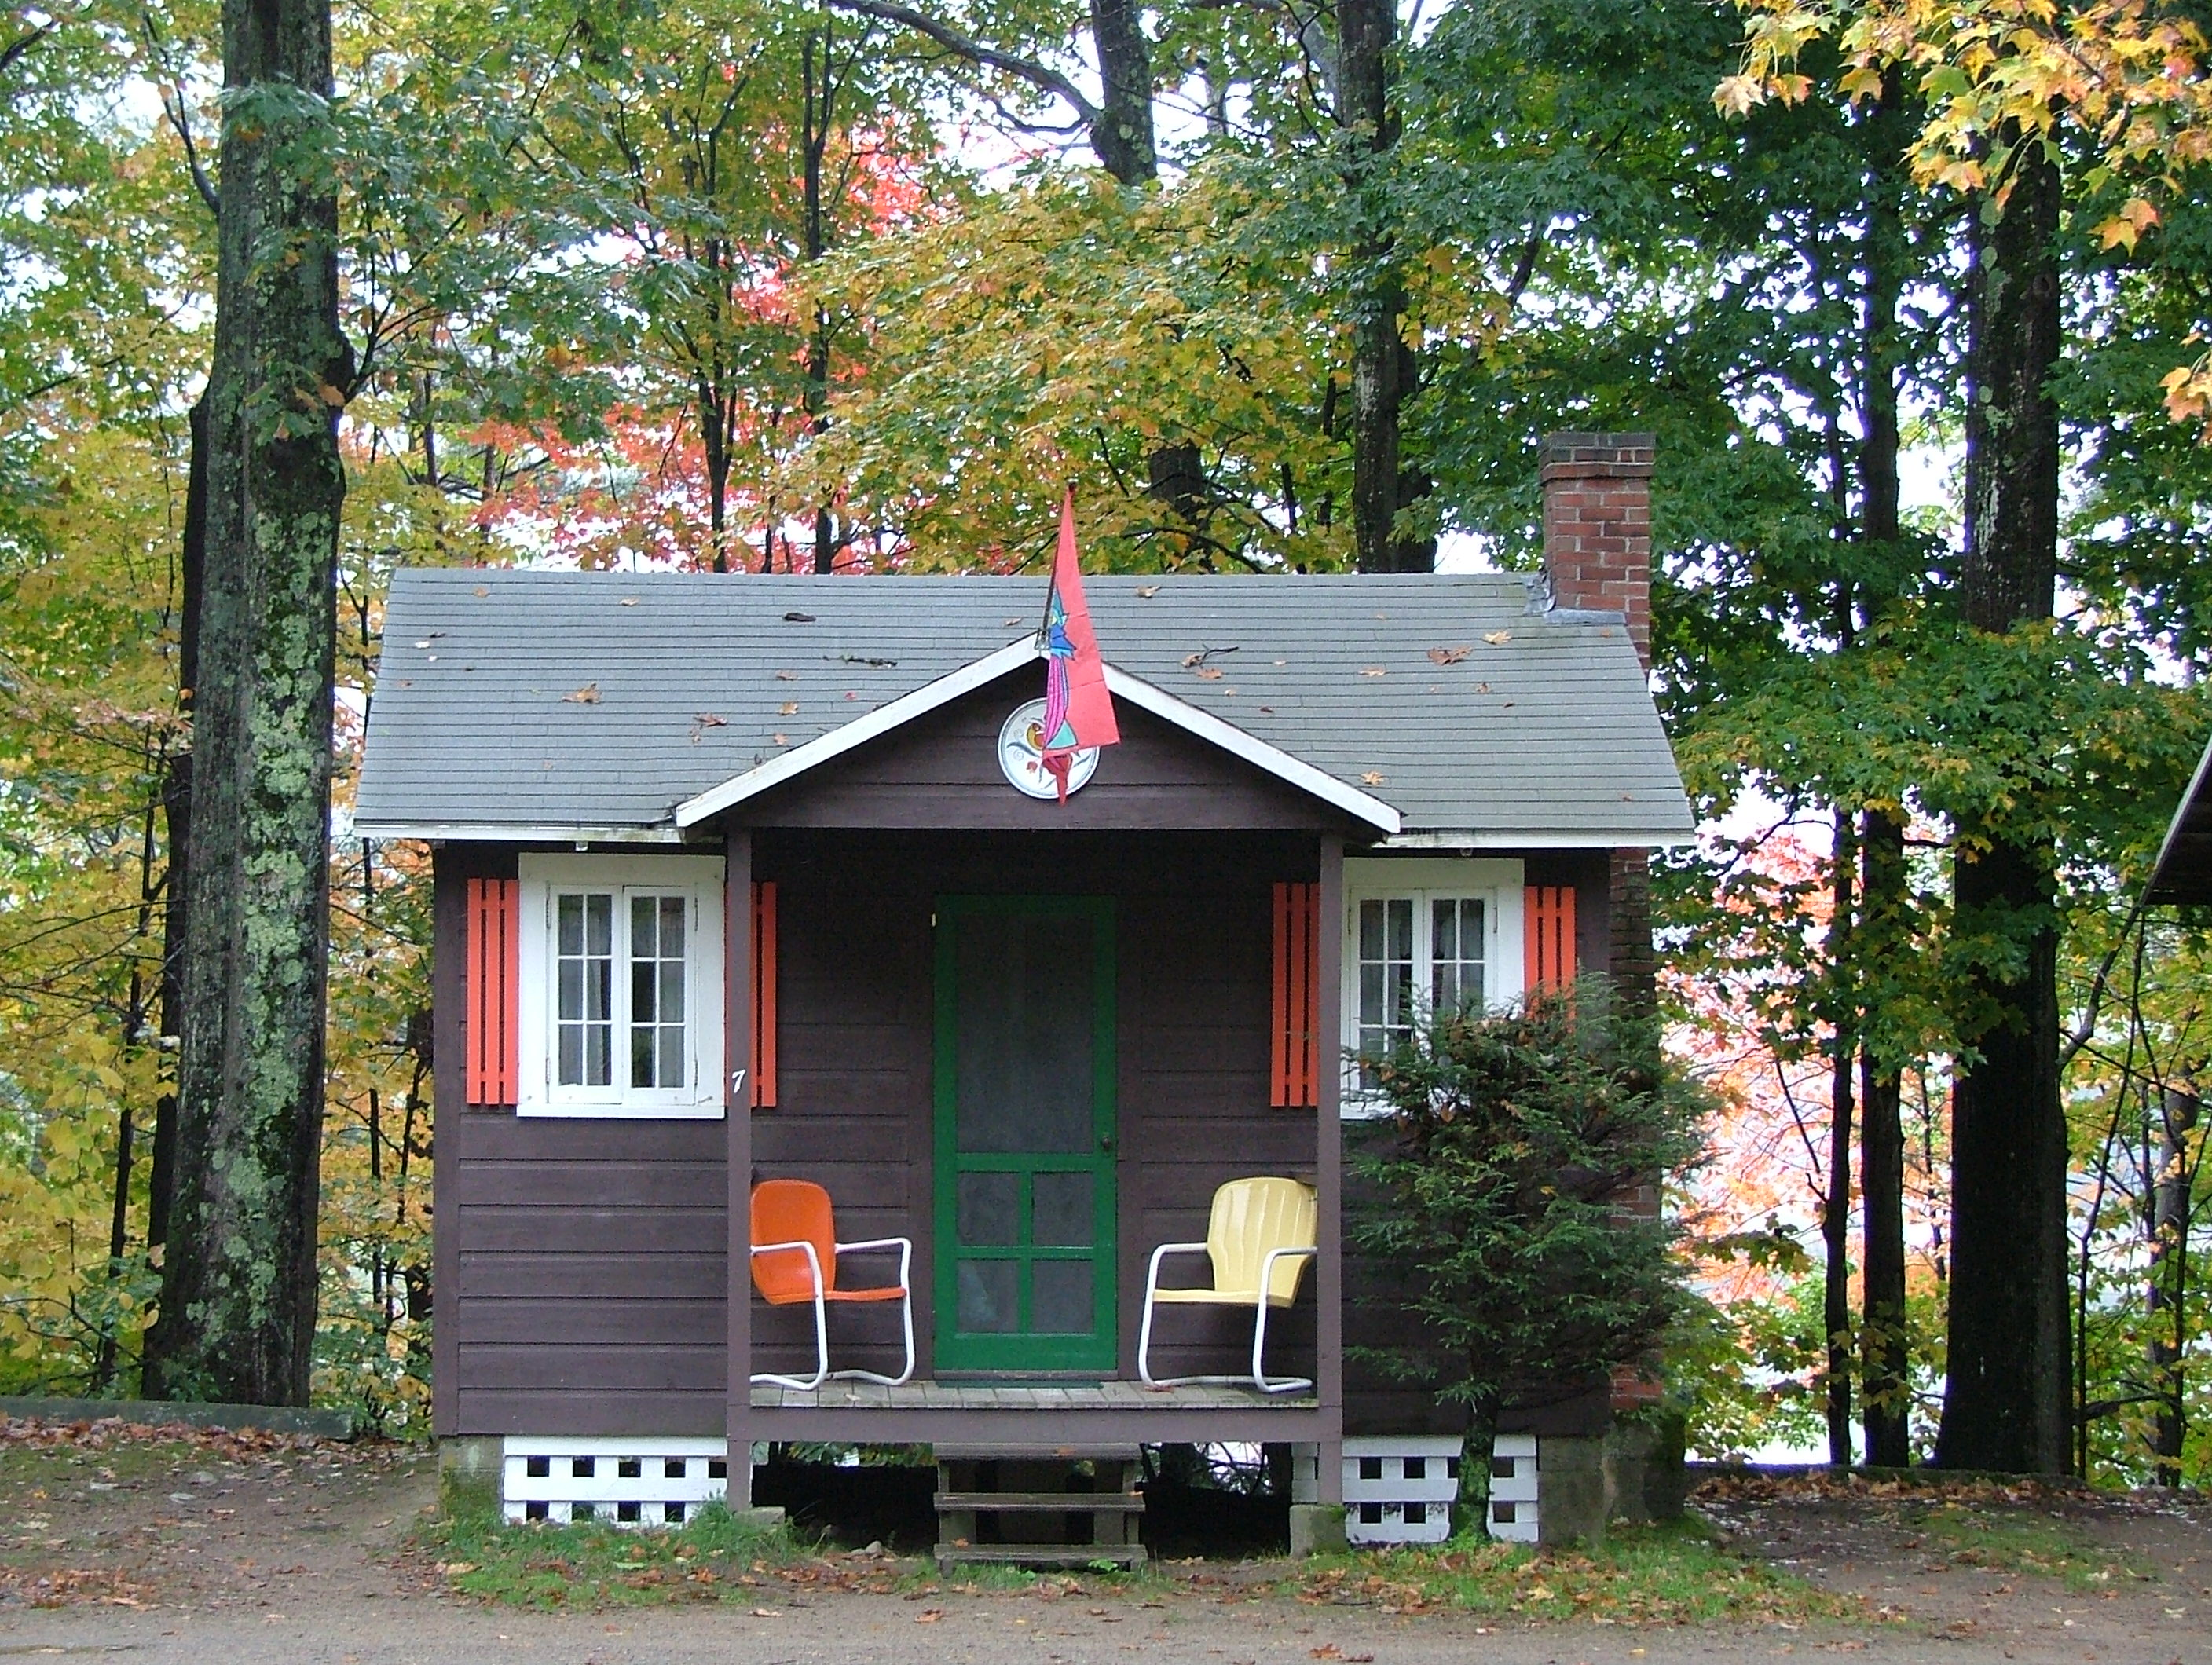 harbor rentals in nh social sunapee hampshire cottages cottage new media